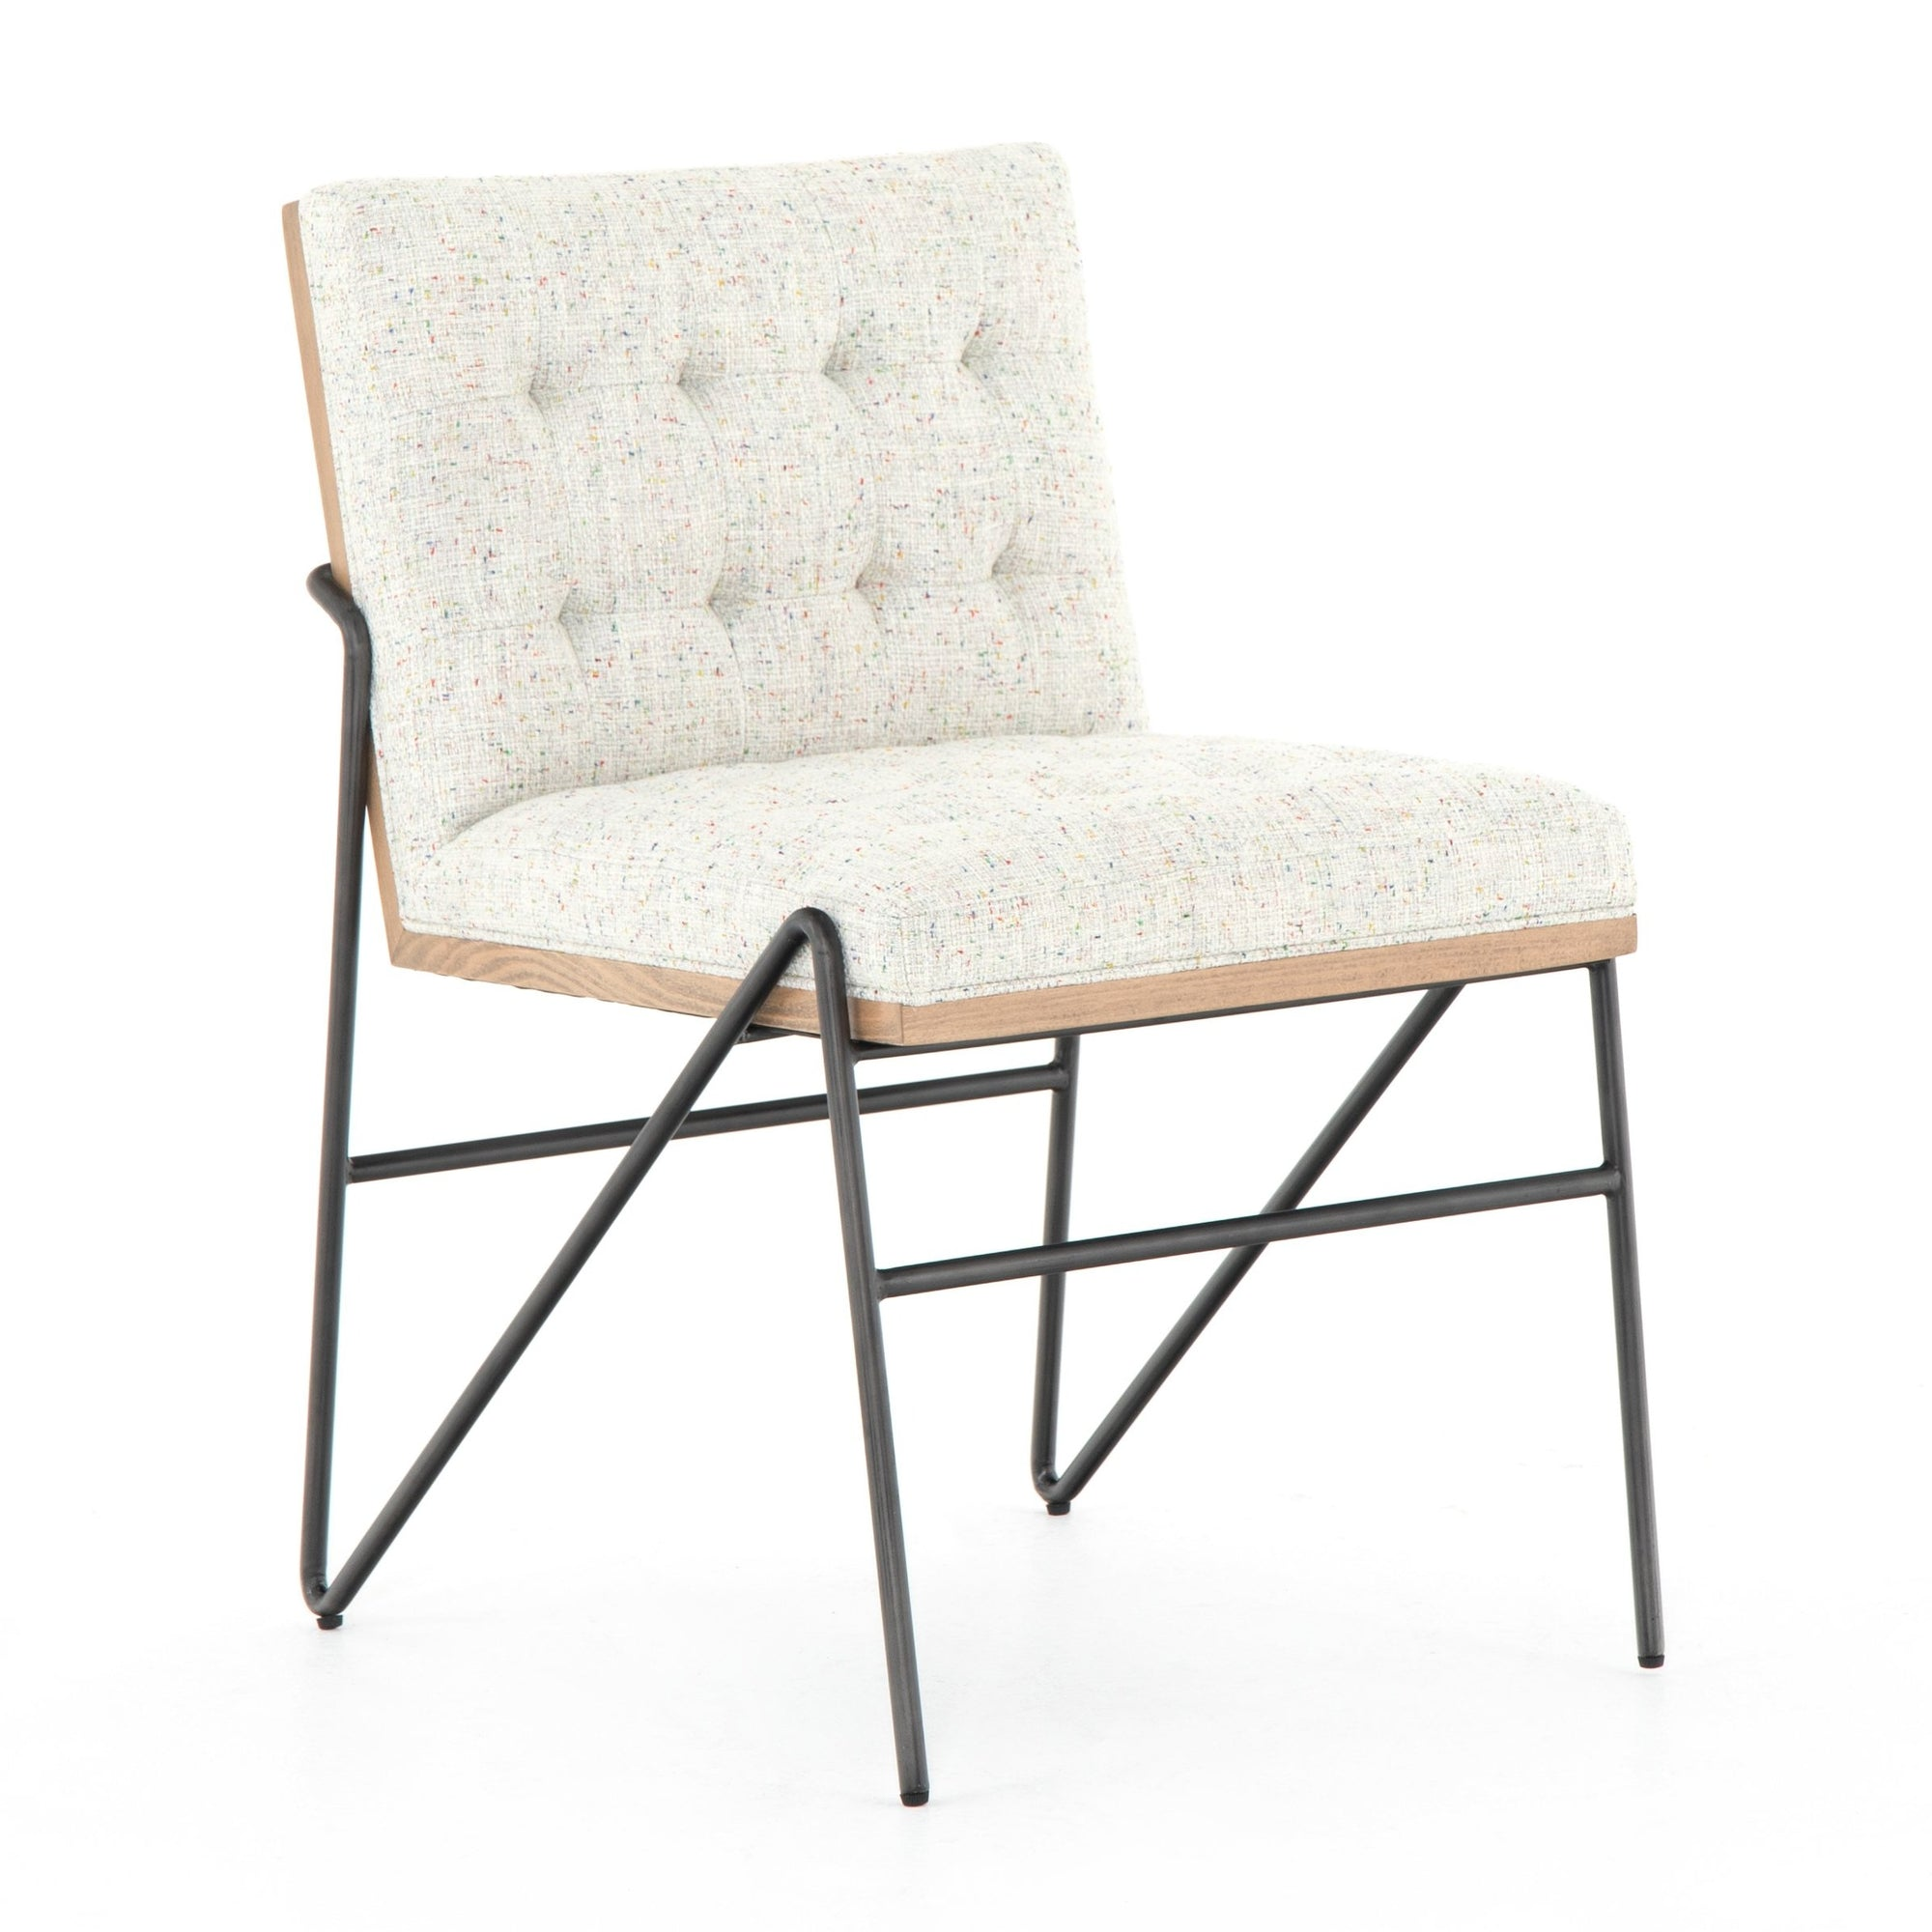 Romy Dining Chair - Rug & Weave